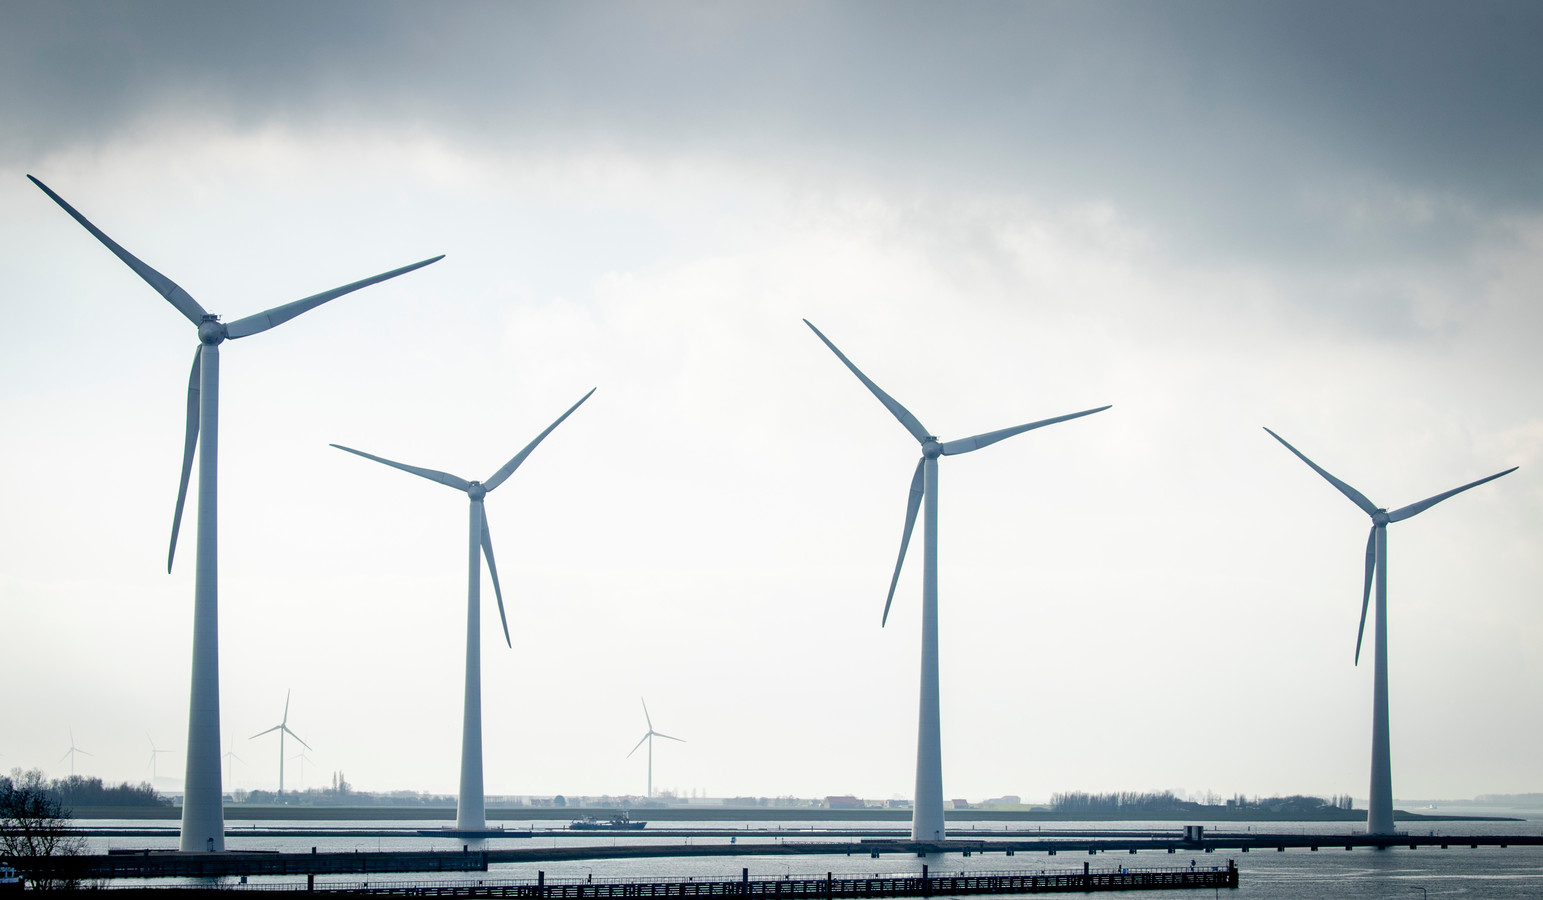 De windmolens van het windpark Krammer in Nederland.